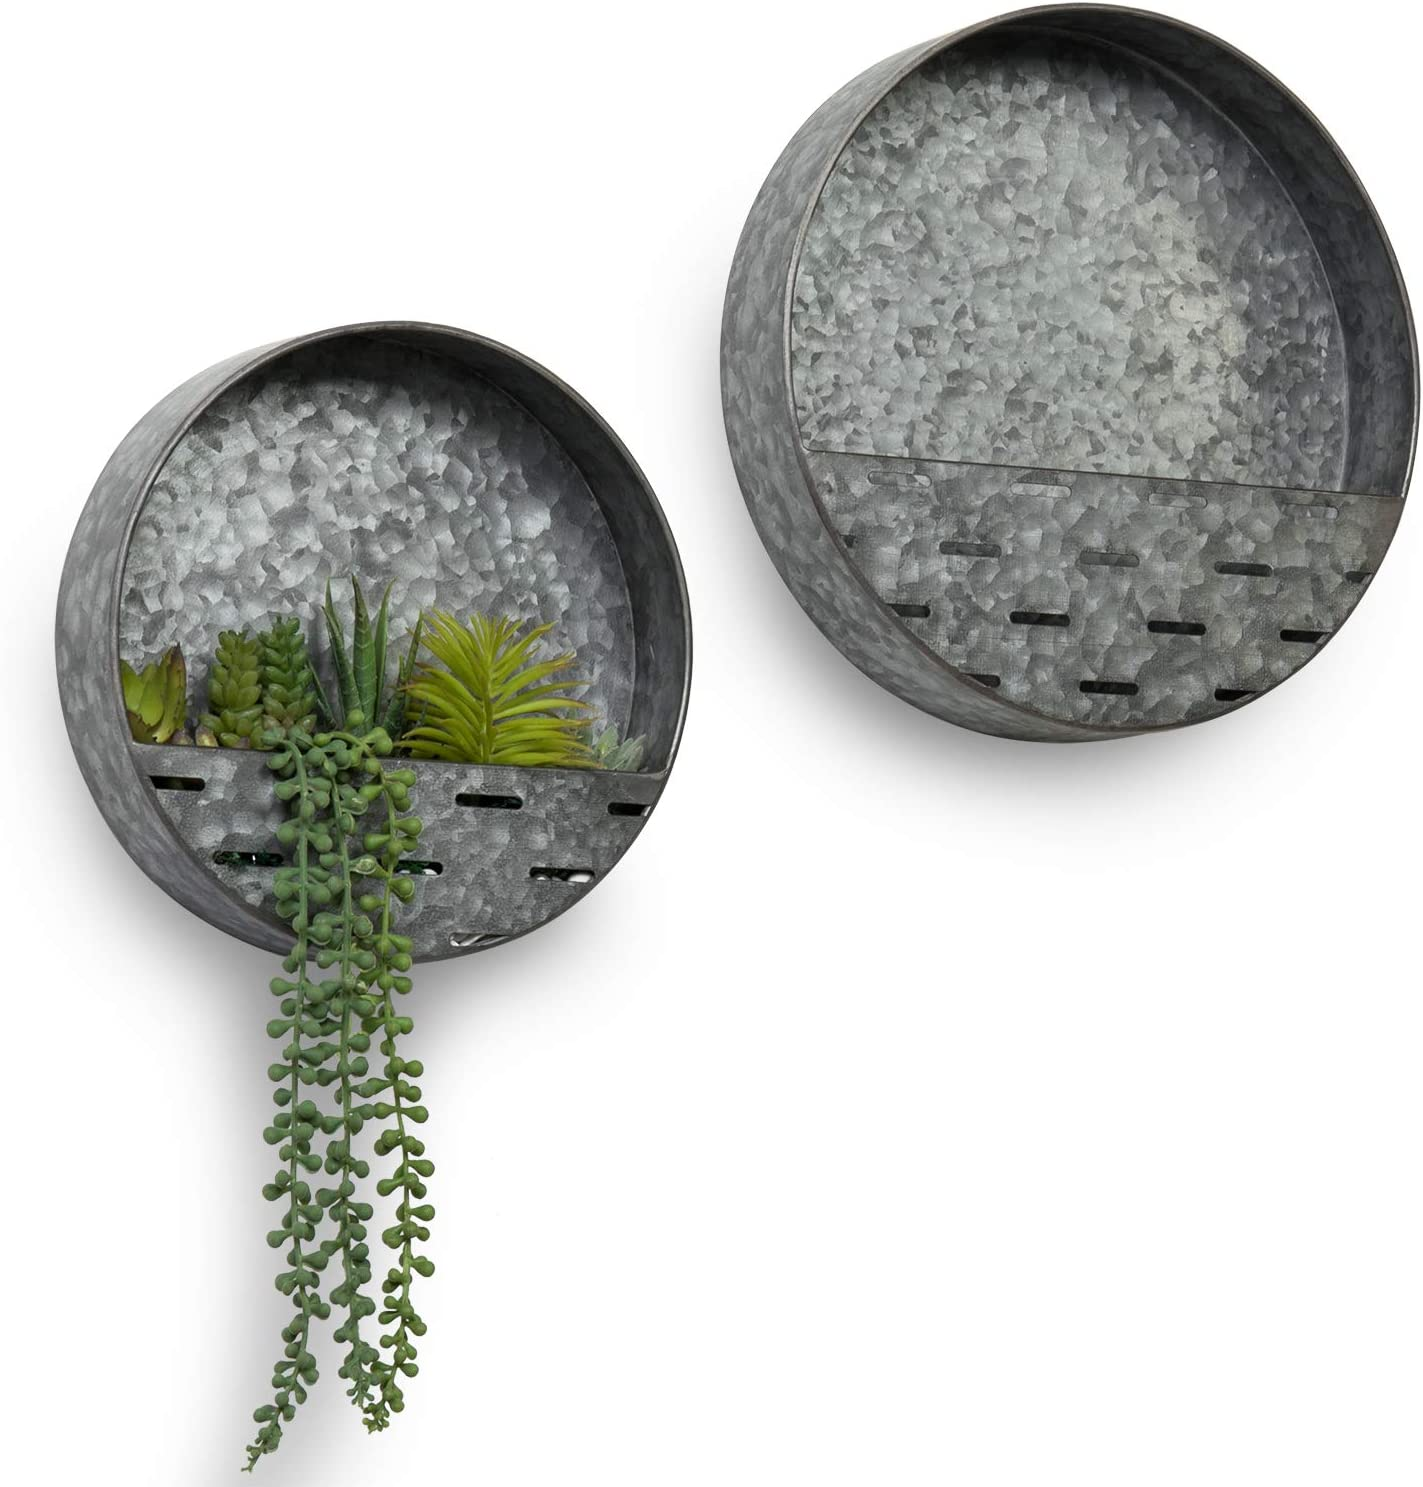 MyGift Rustic Silver Opening large release sale Arlington Mall Galvanized Succulent Round Metal Decorative